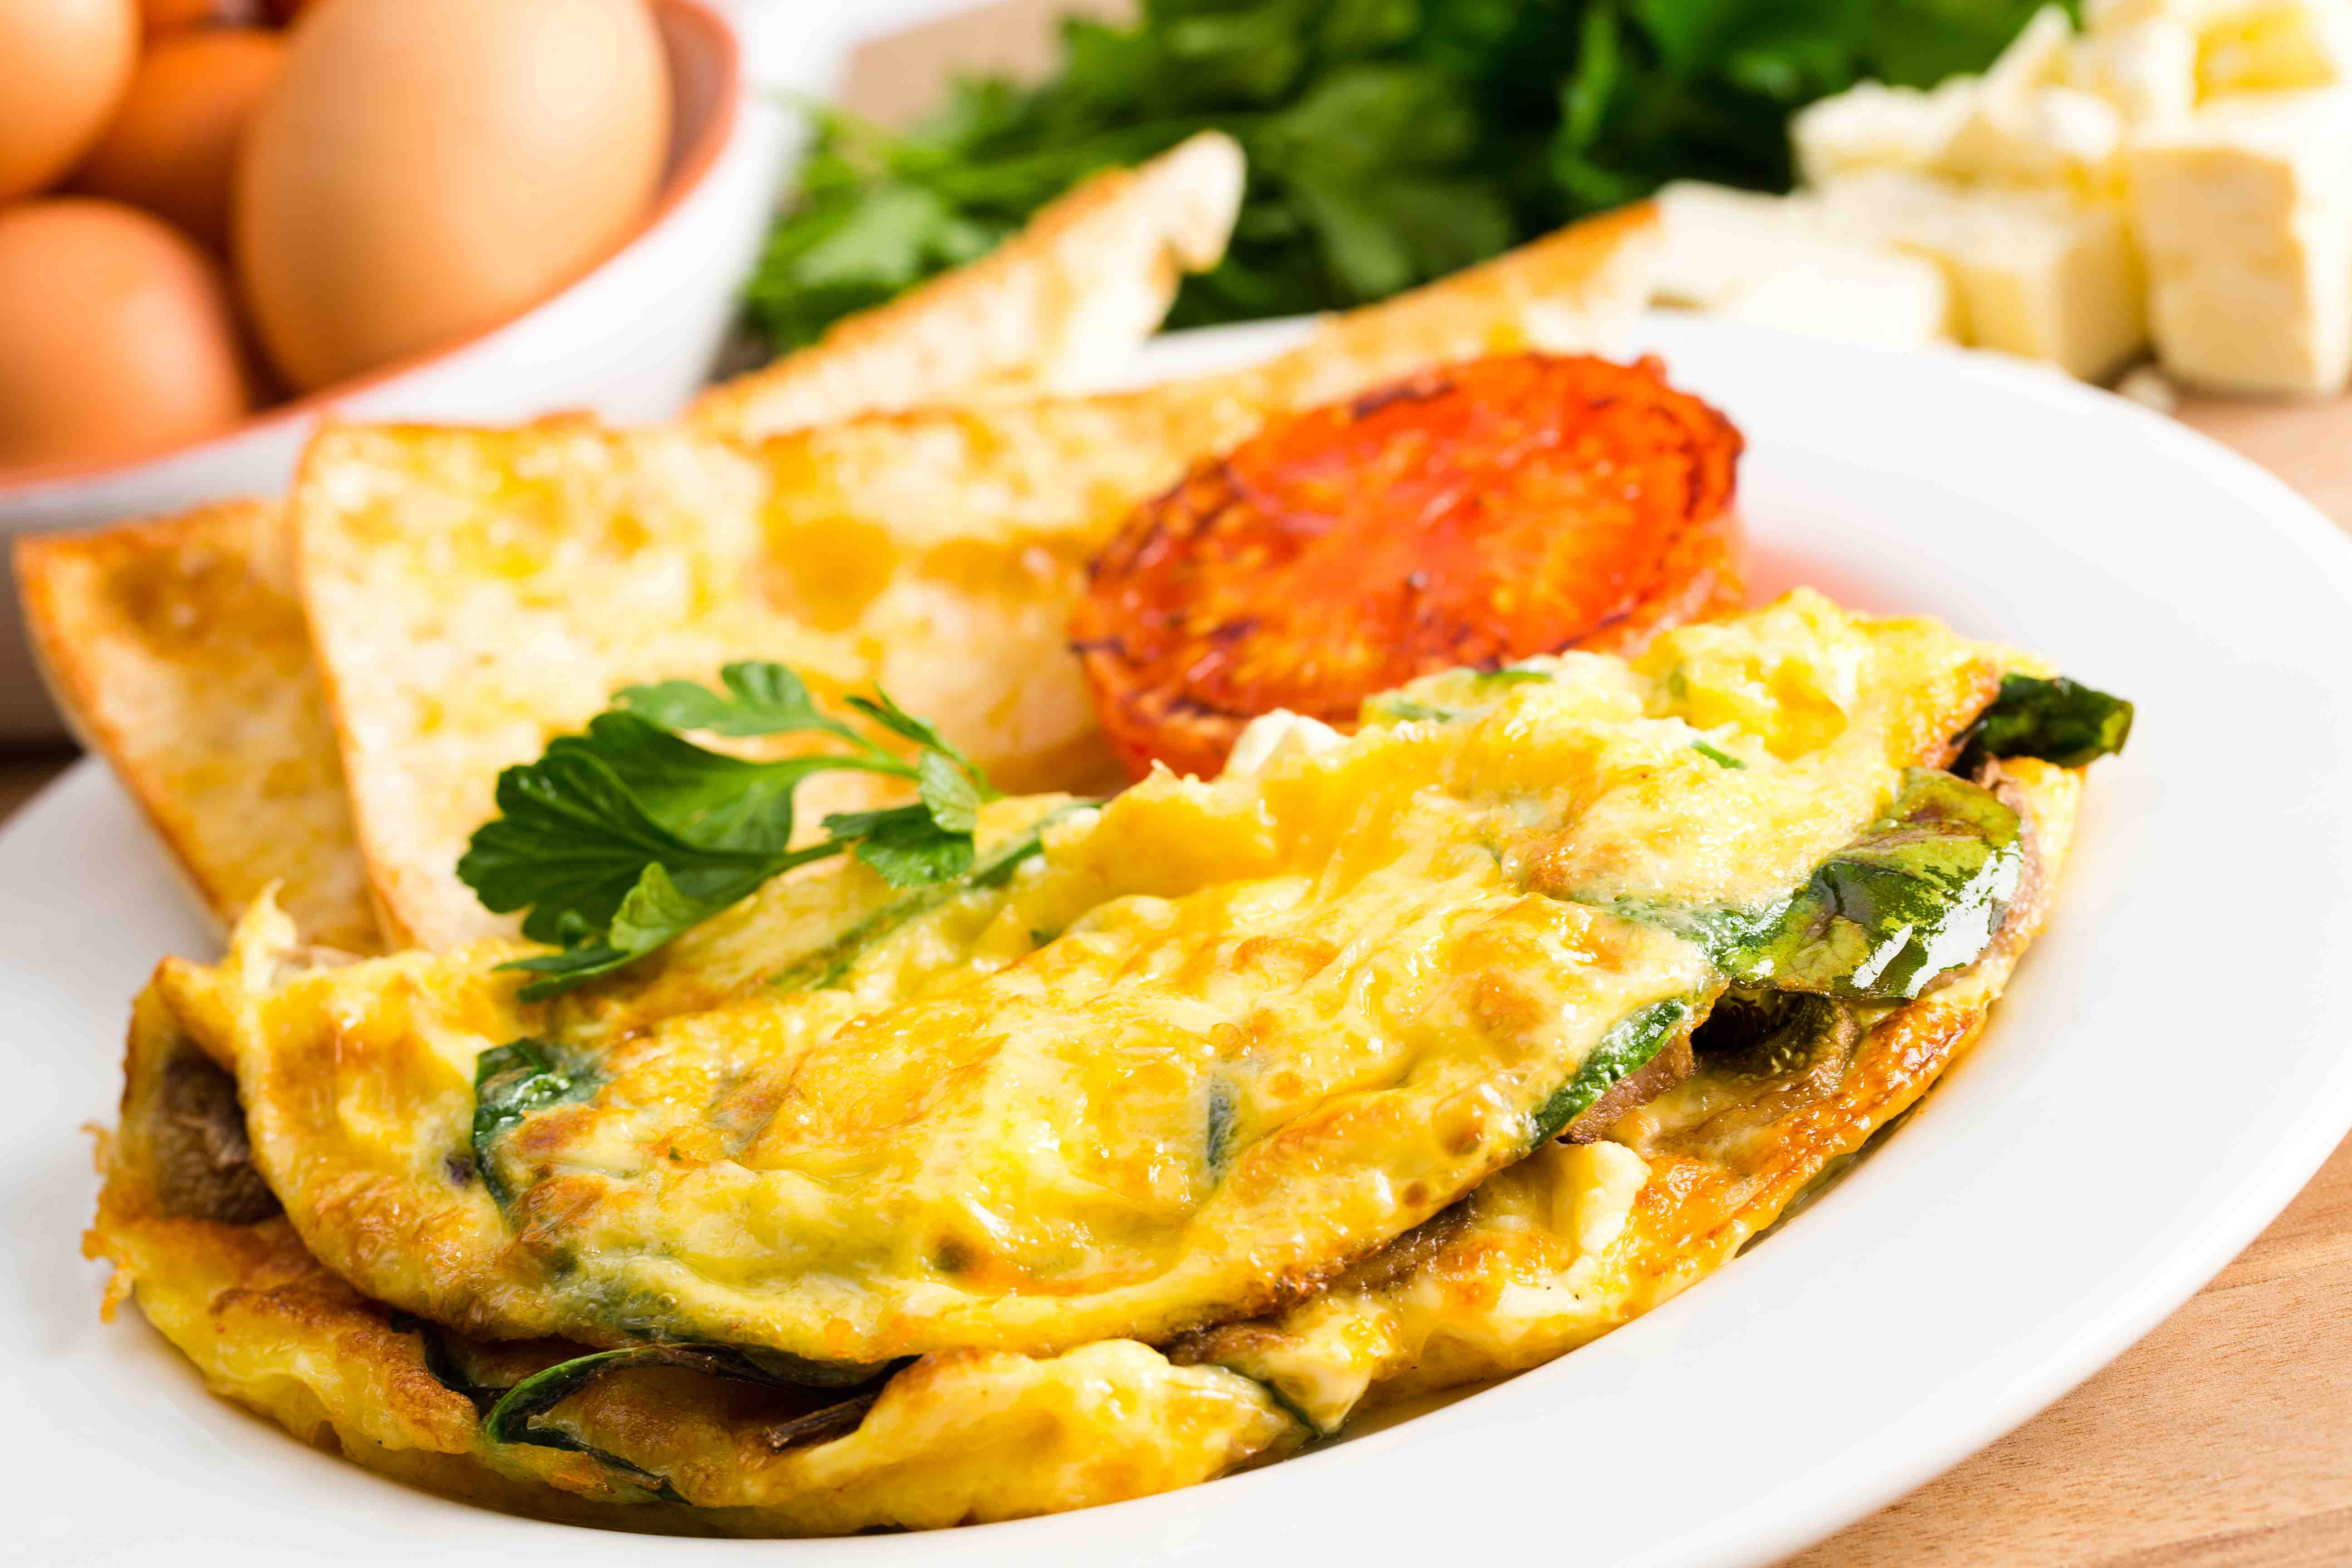 Omelette clipart hot frying pan All Breakfast Spinach Day and